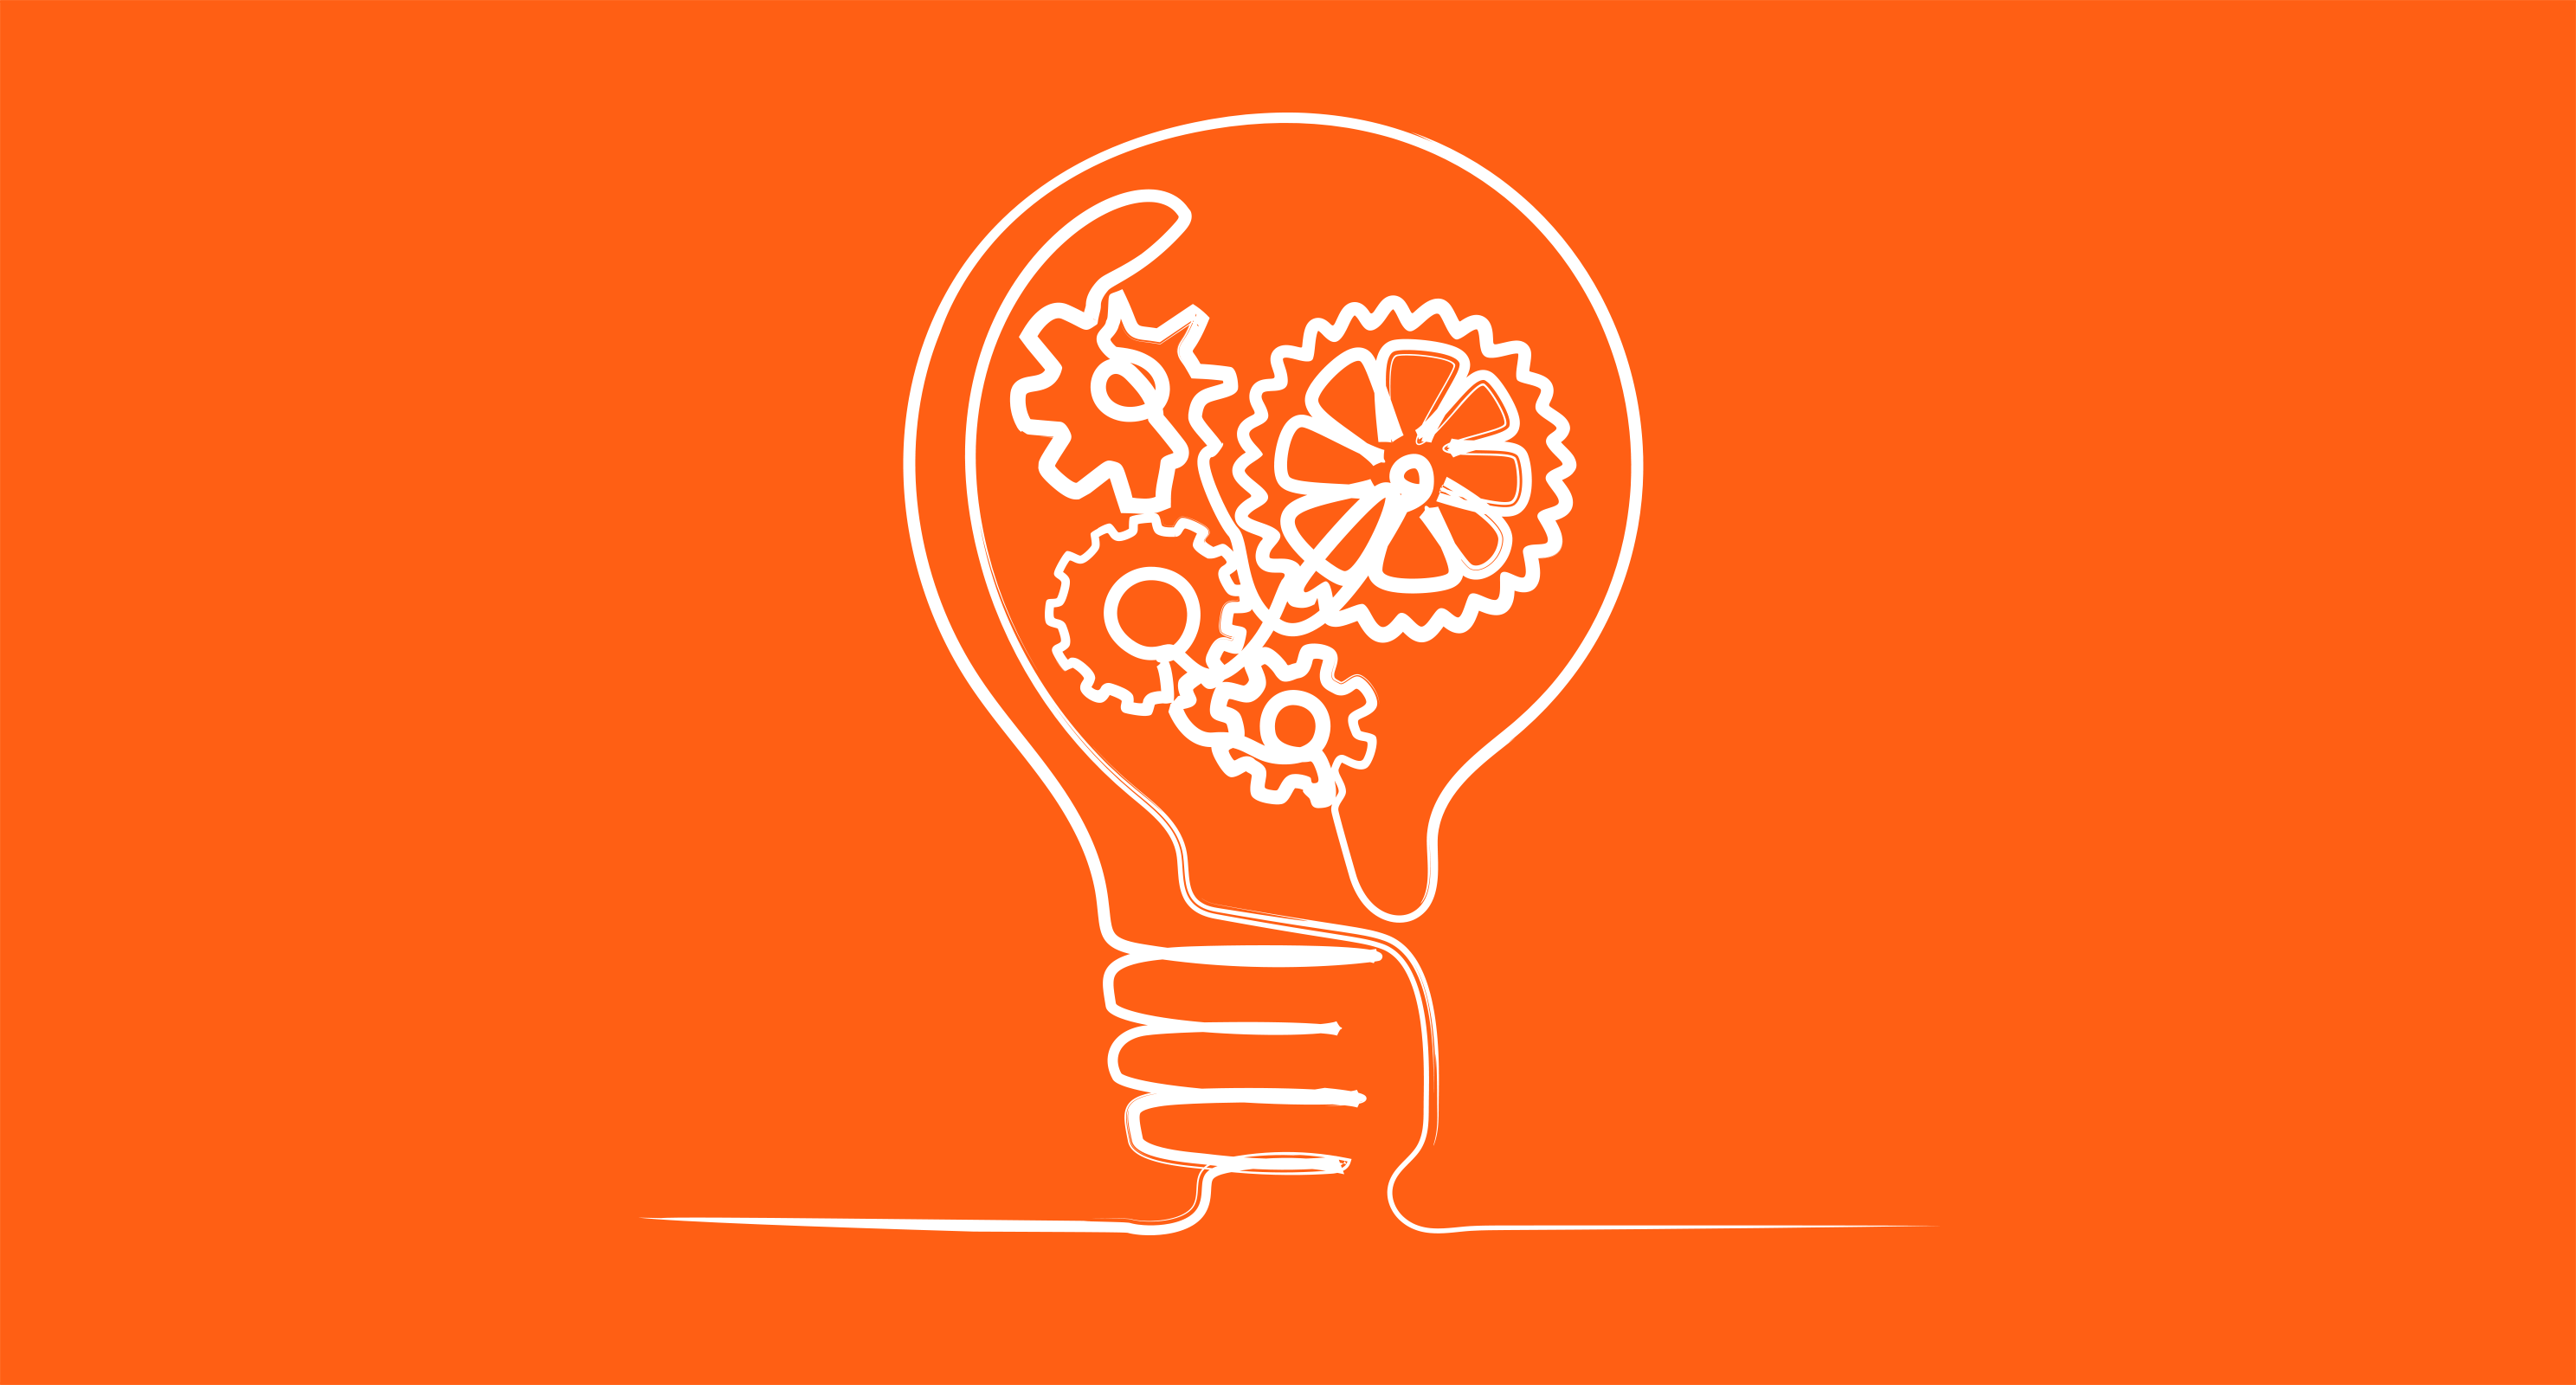 Orange background, single line drawing in white of lightbulb filled with gears